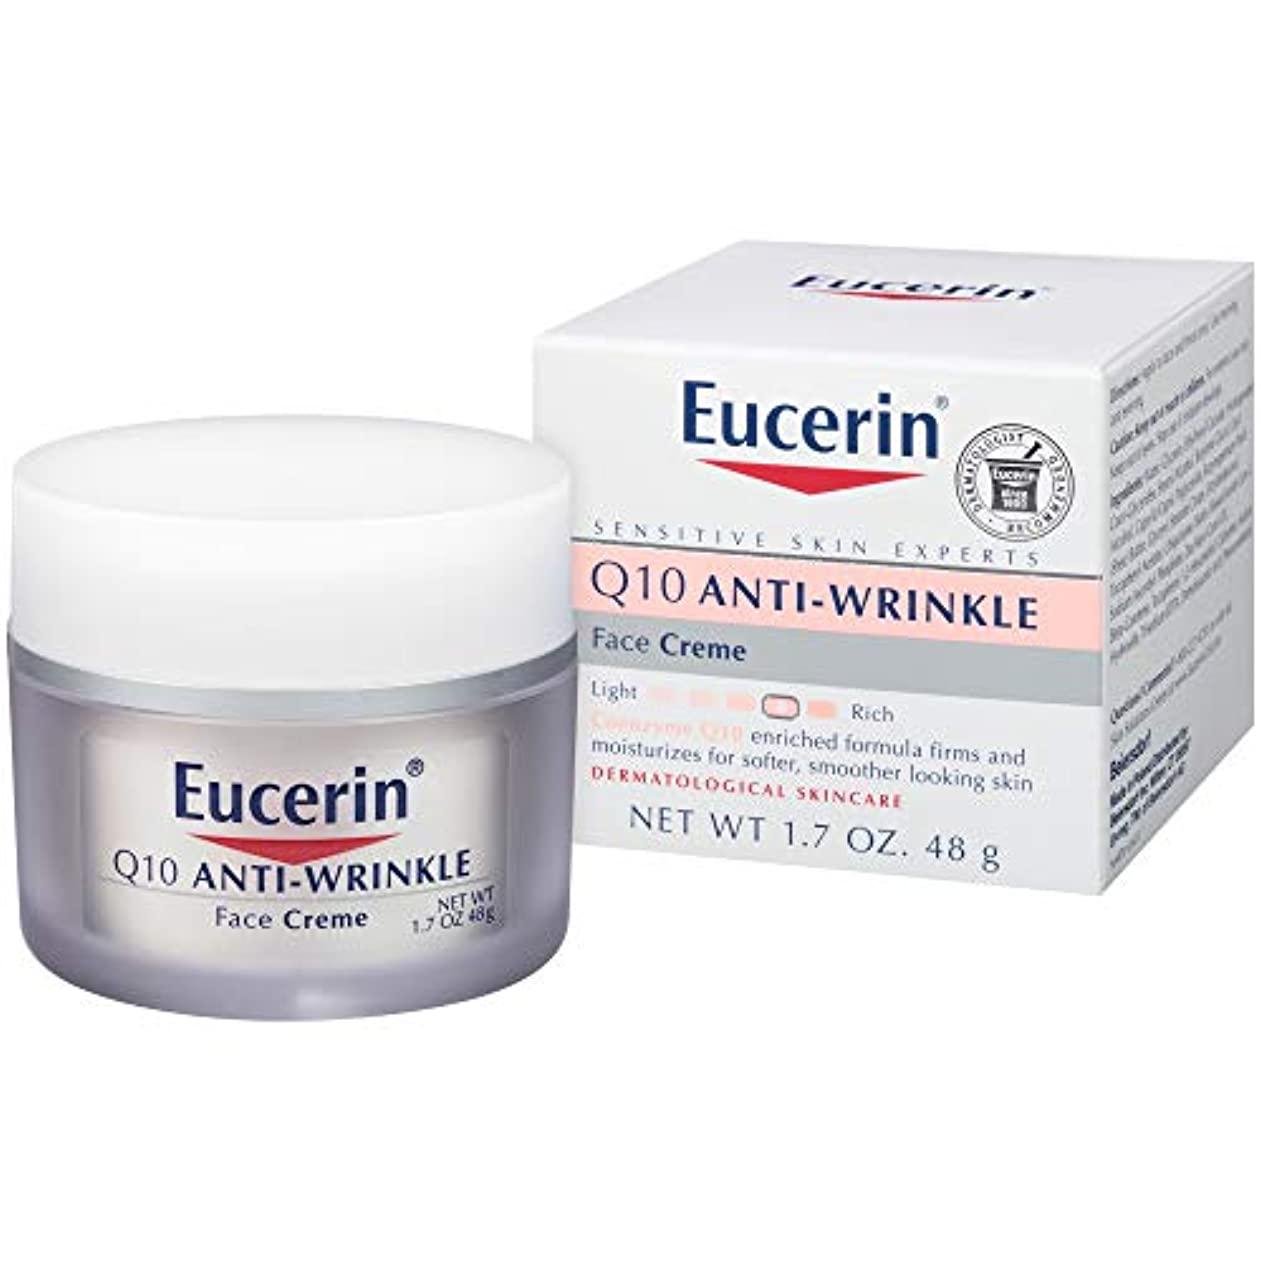 色合い感謝祭脅かすEucerin Sensitive Facial Skin Q10 Anti-Wrinkle Sensitive Skin Creme 48g (並行輸入品)